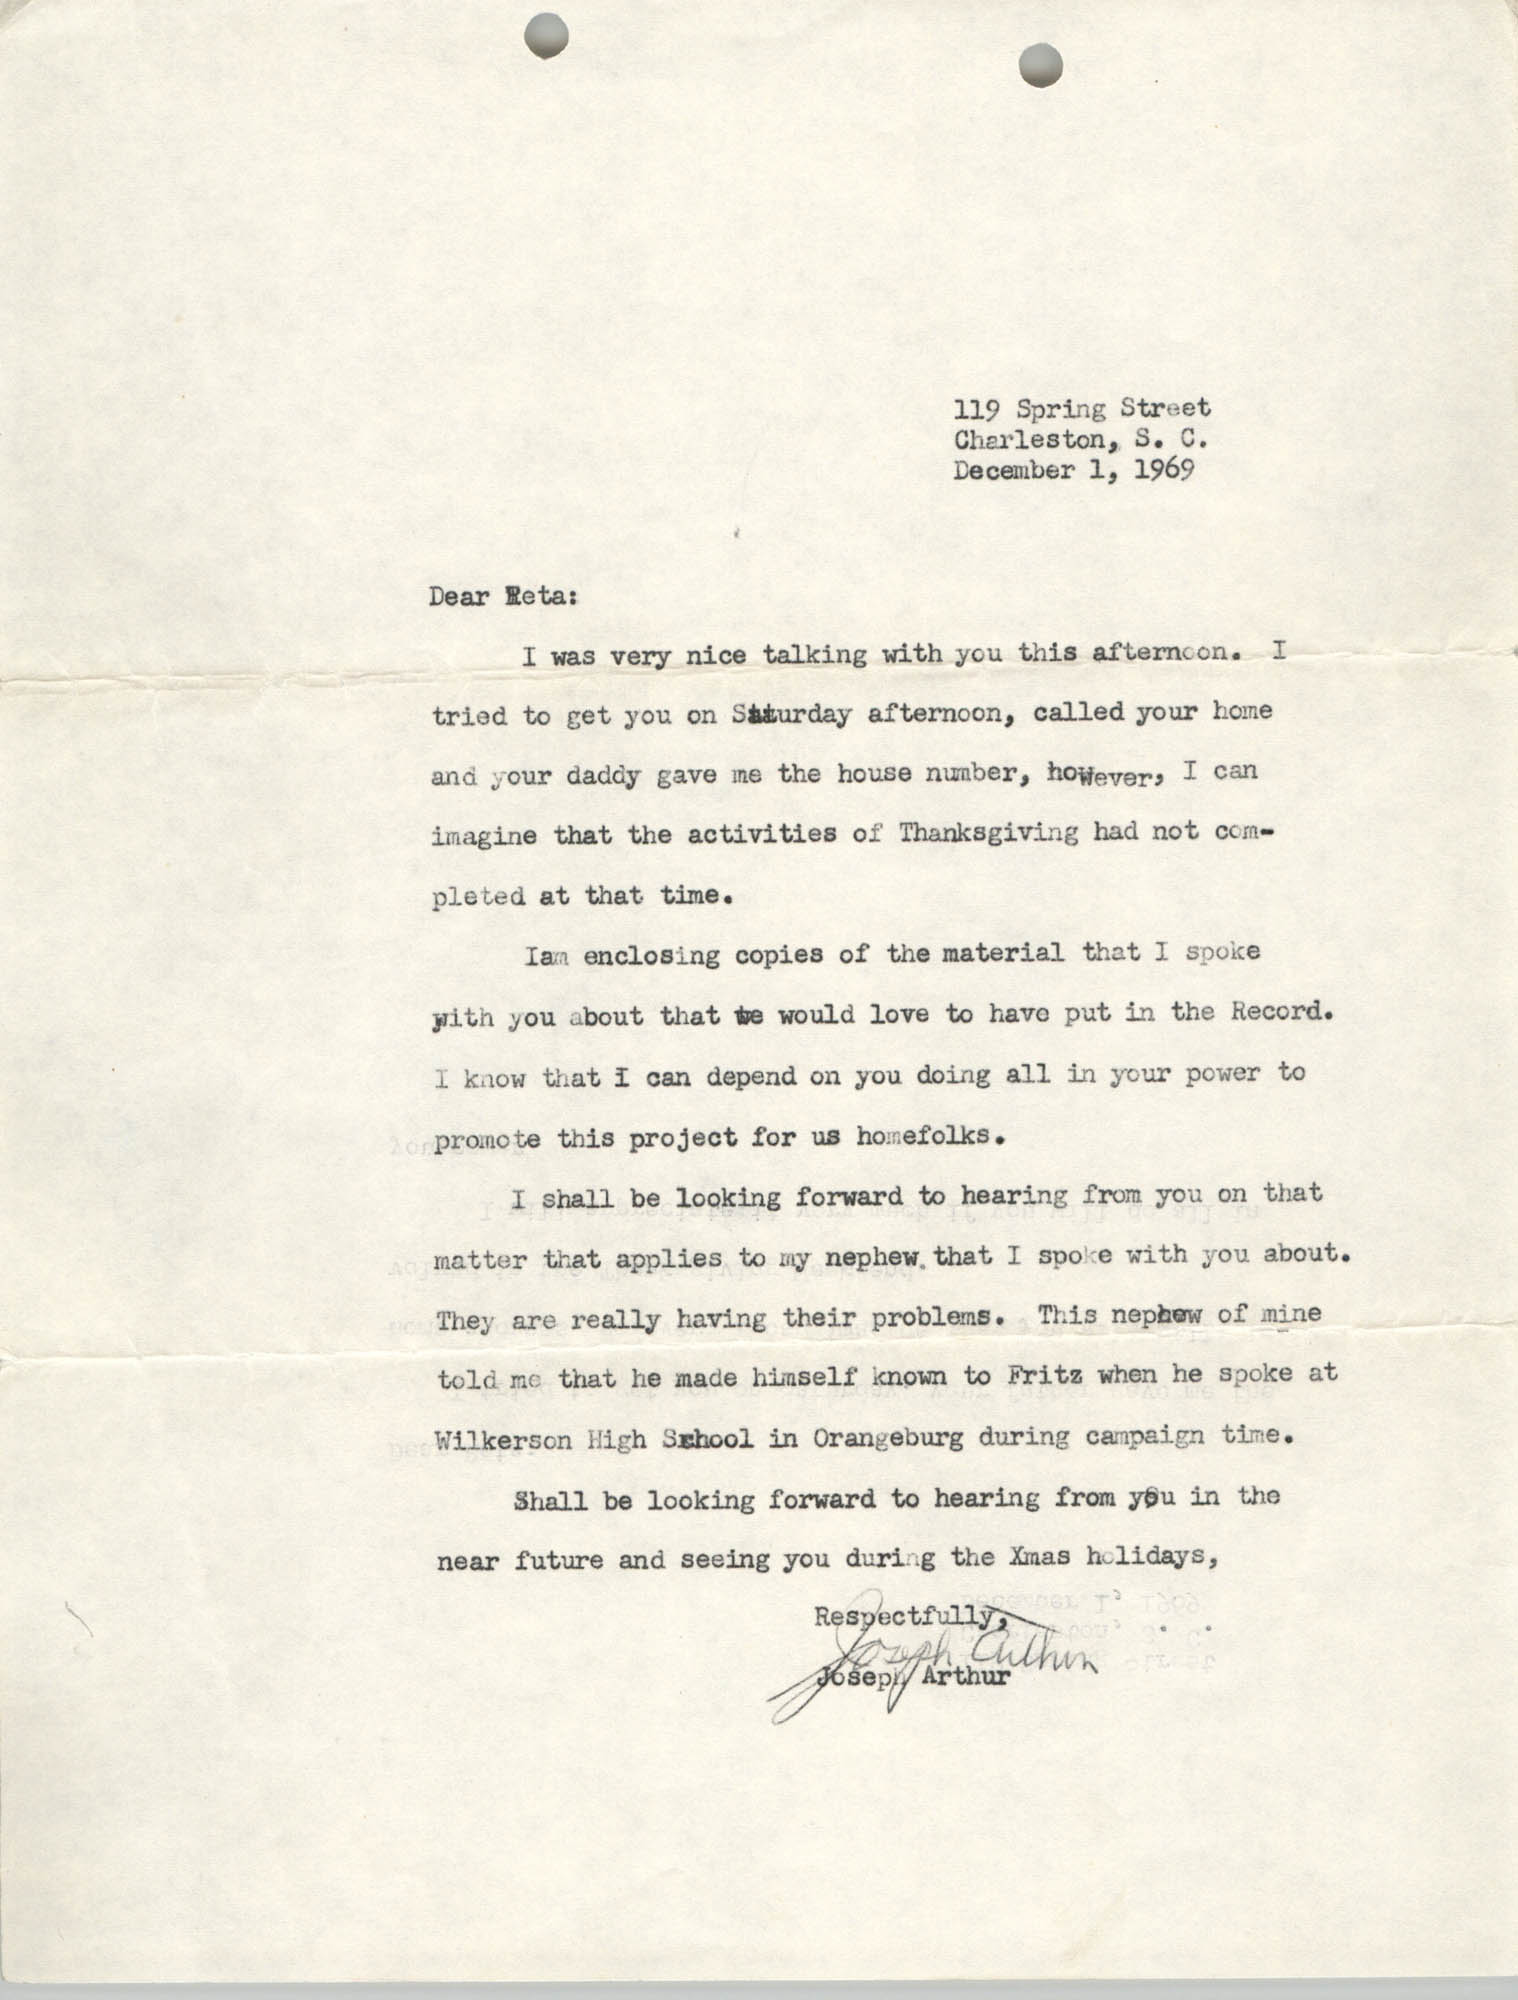 Letter from J. Arthur Brown to Reta, December 1, 1969